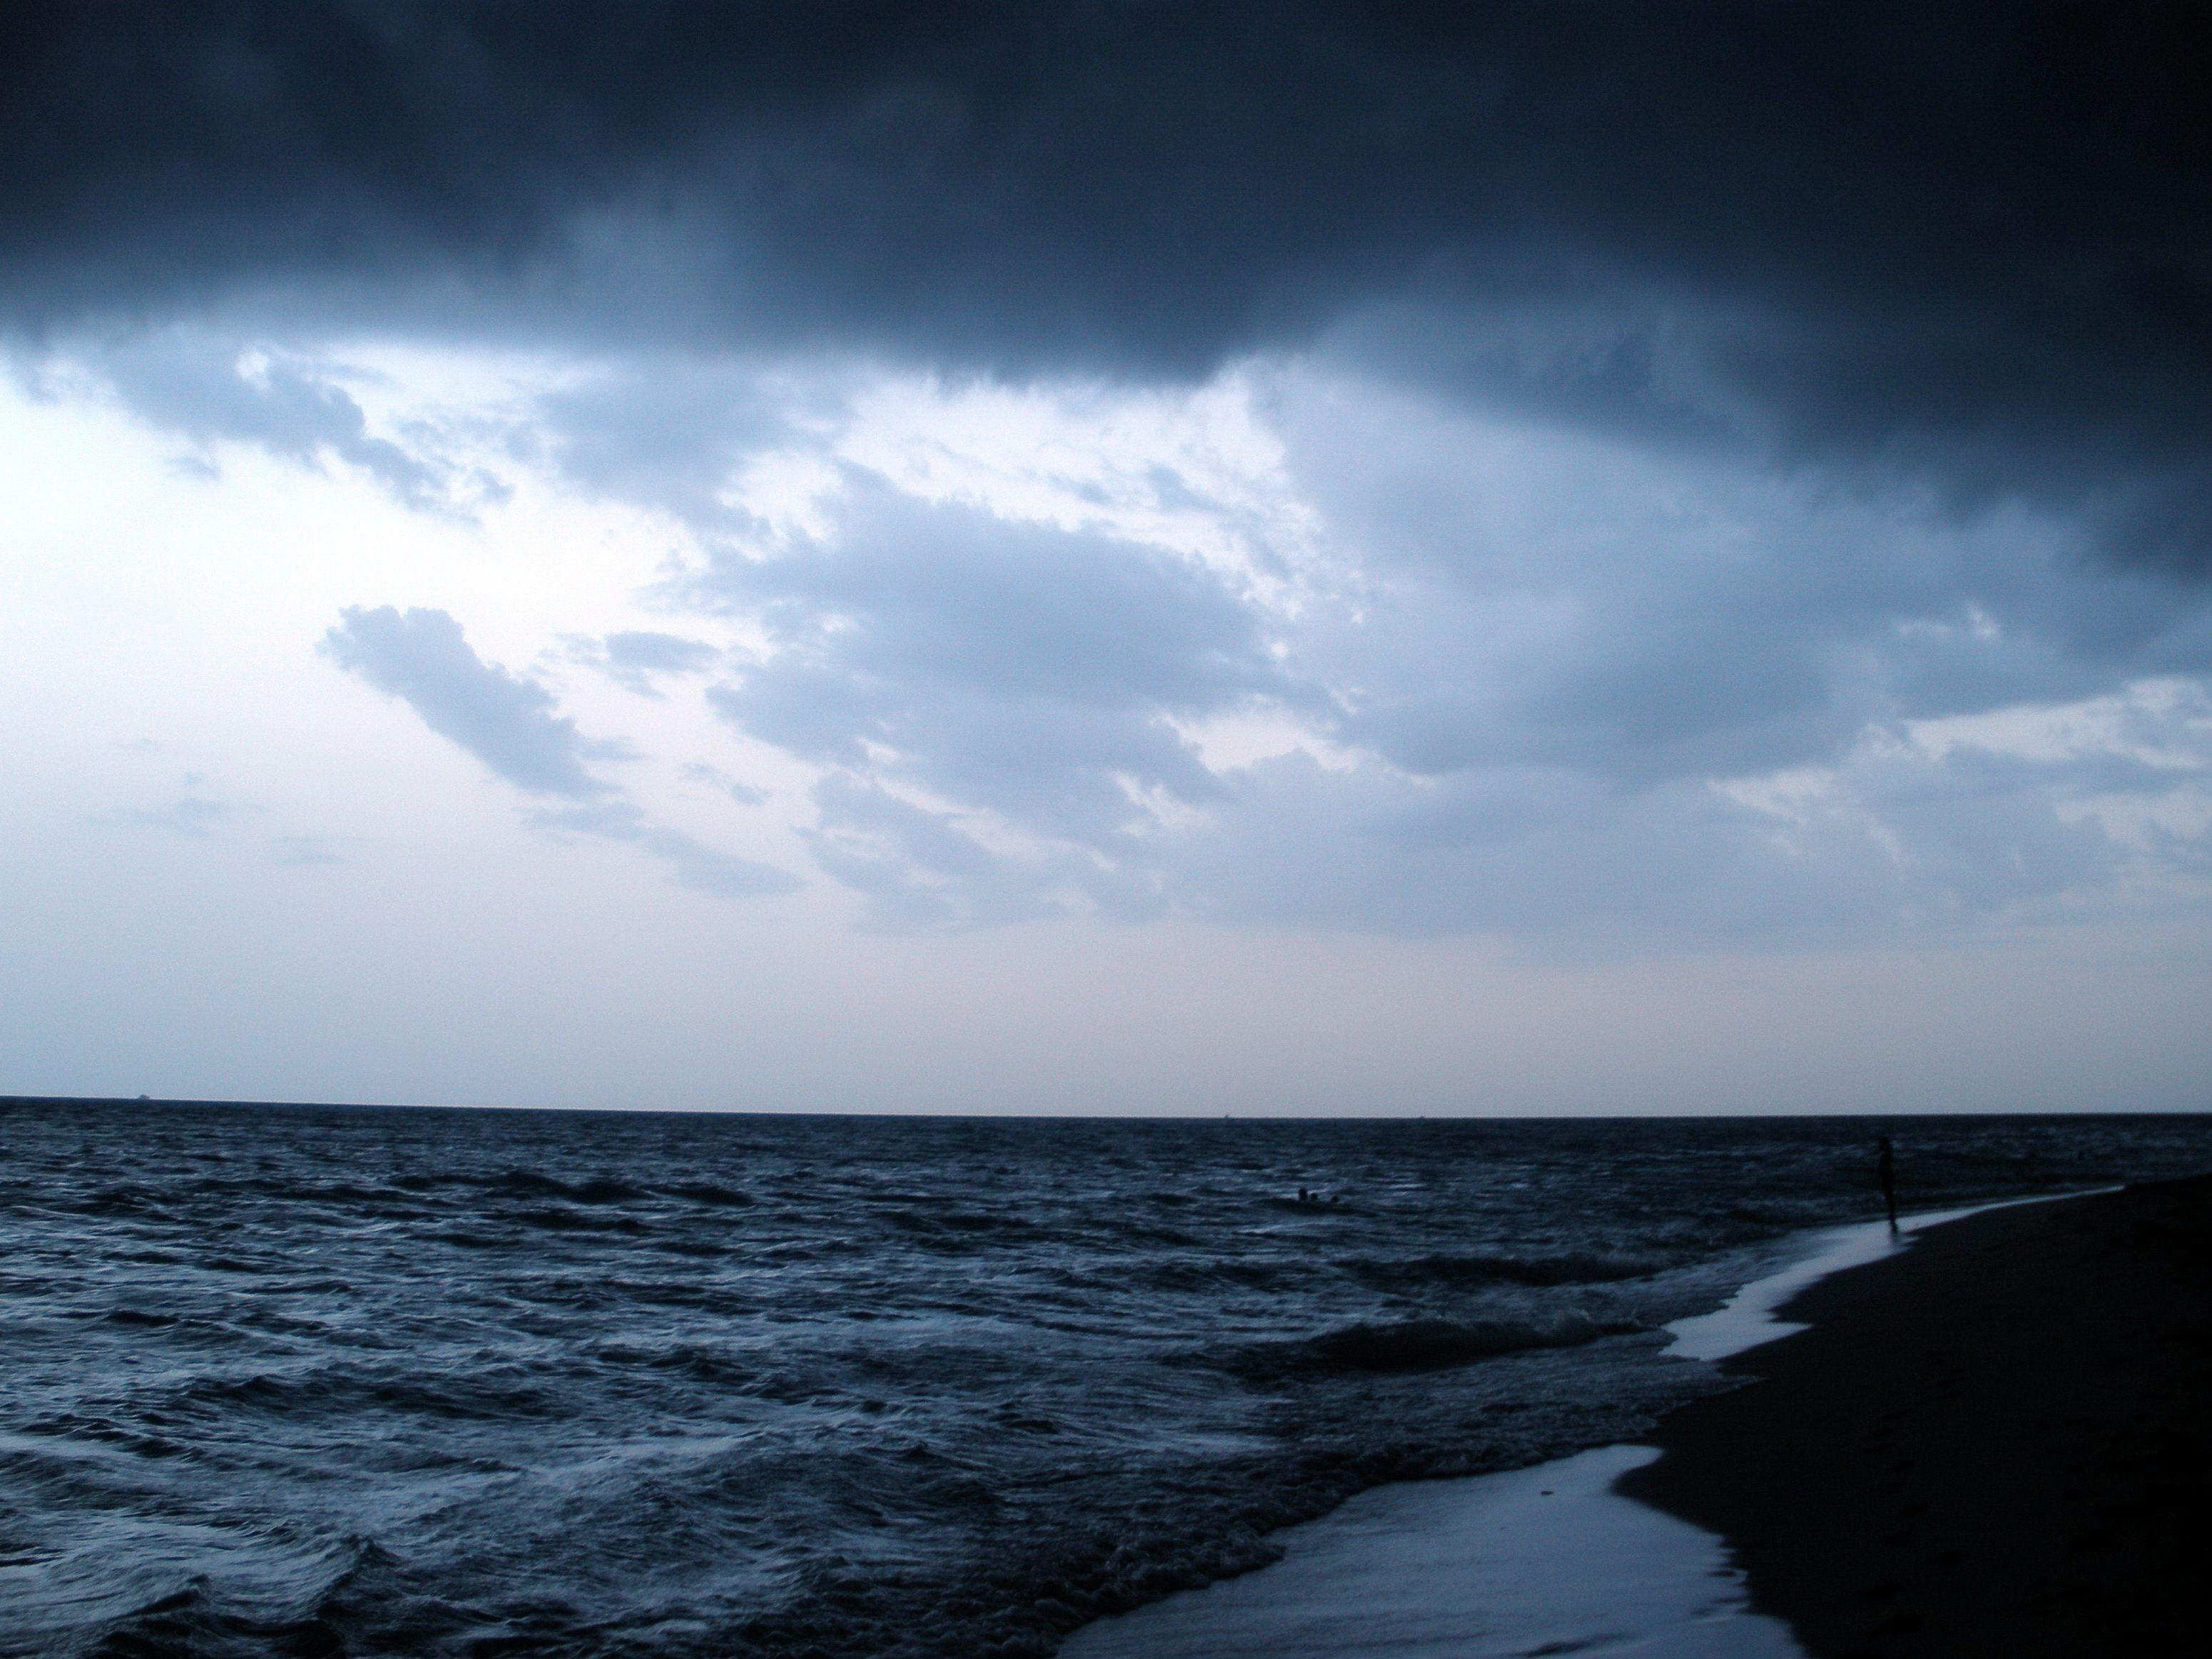 Stormy Skies Wallpapers - Wallpaper Cave